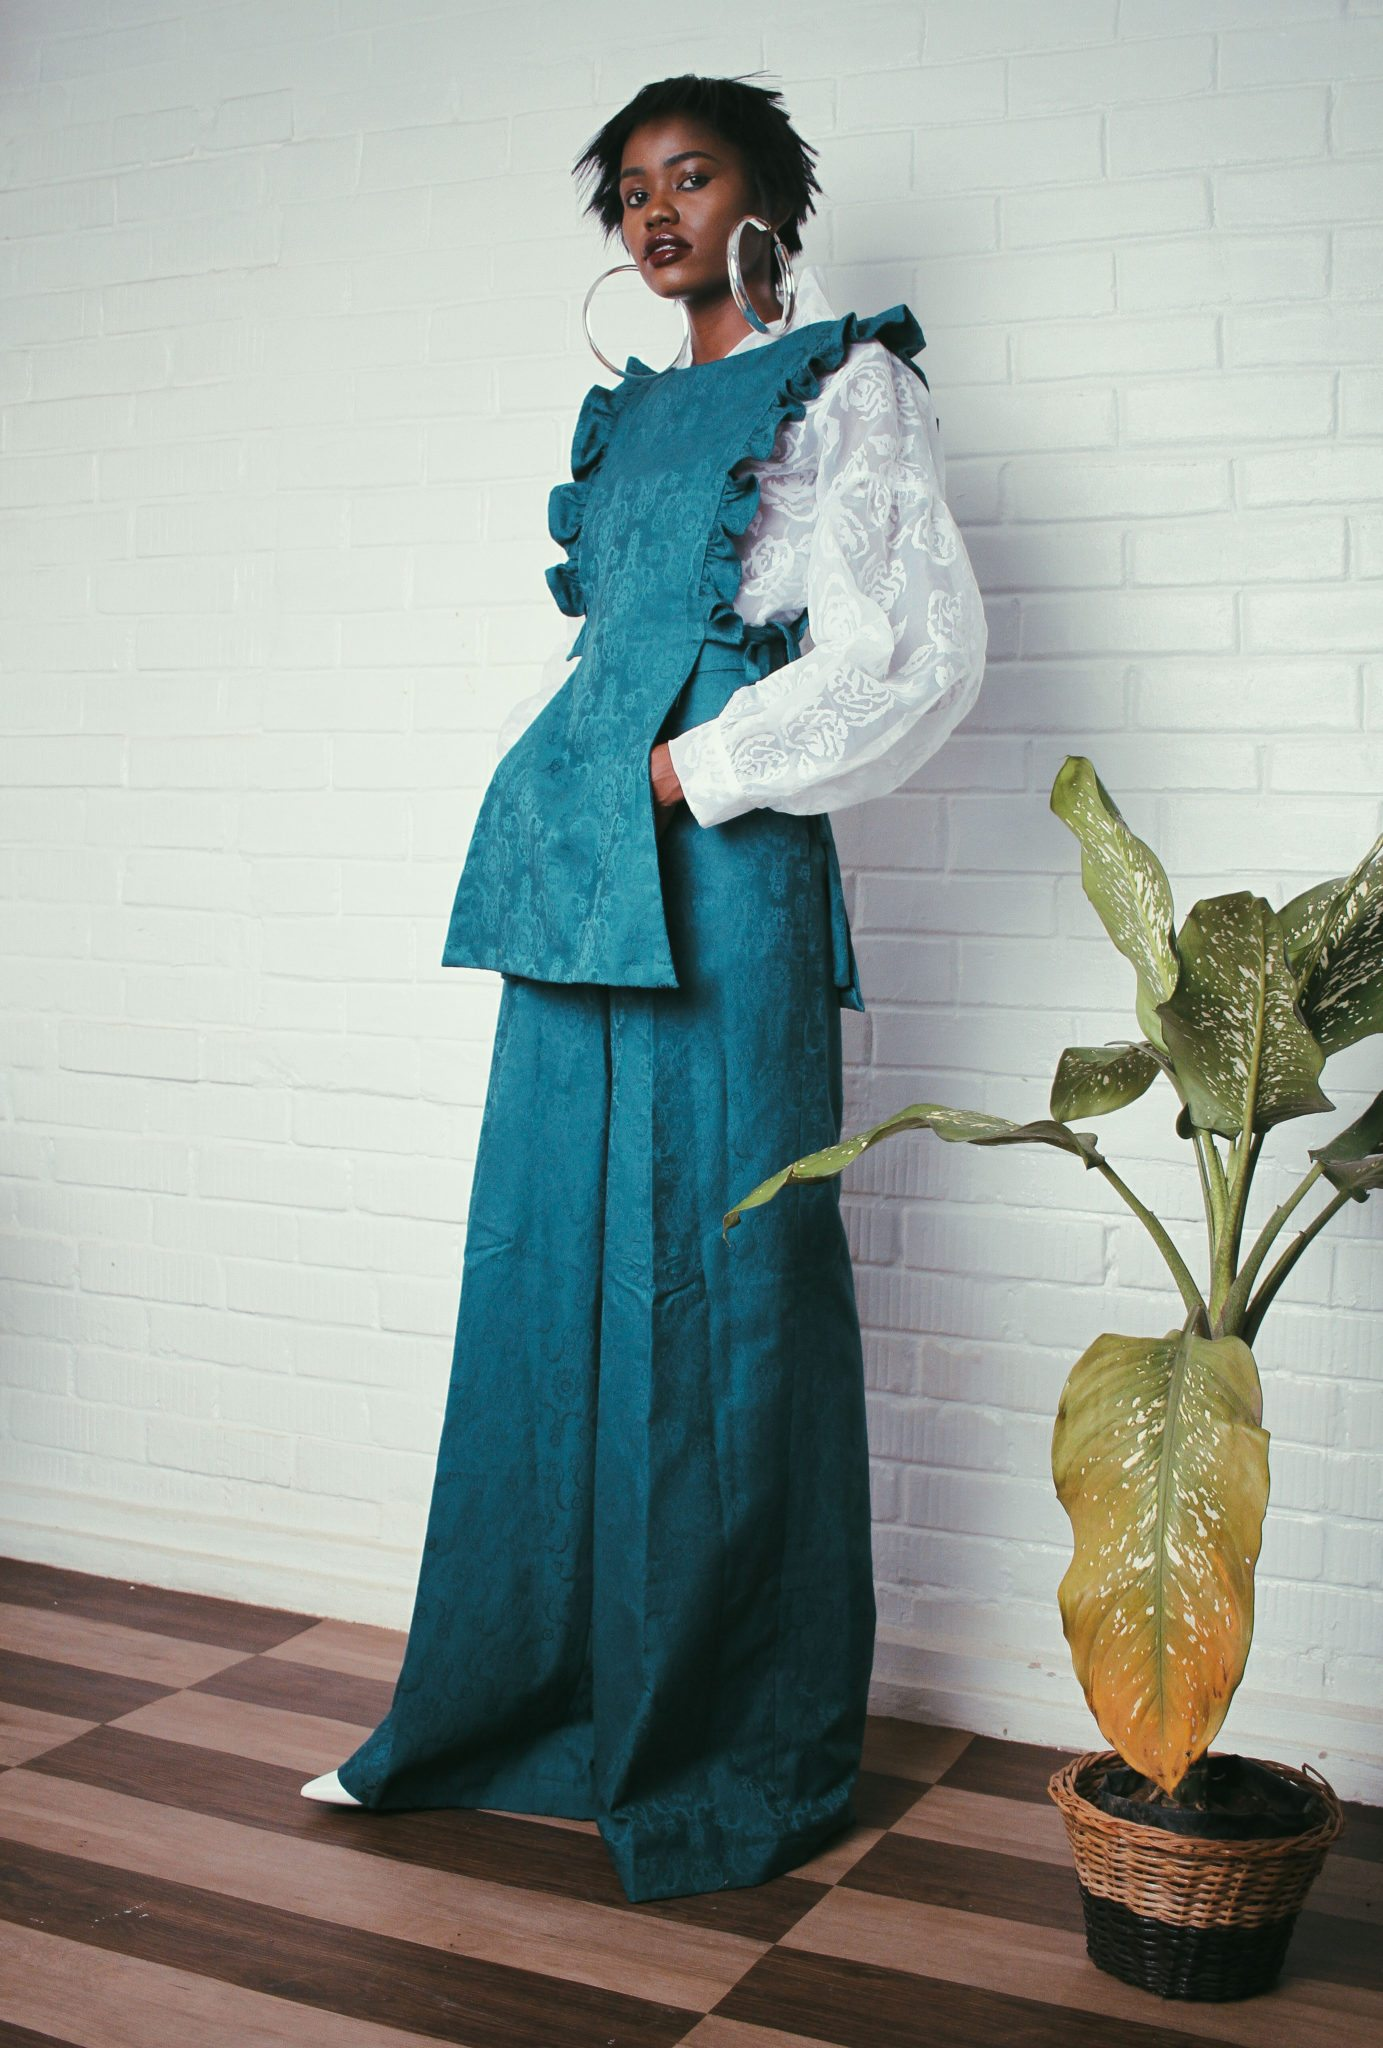 budding-womenswear-label-elpis-megalio-releases-ready-wear-fall-winter-18-collection-tagged-coincidentalia